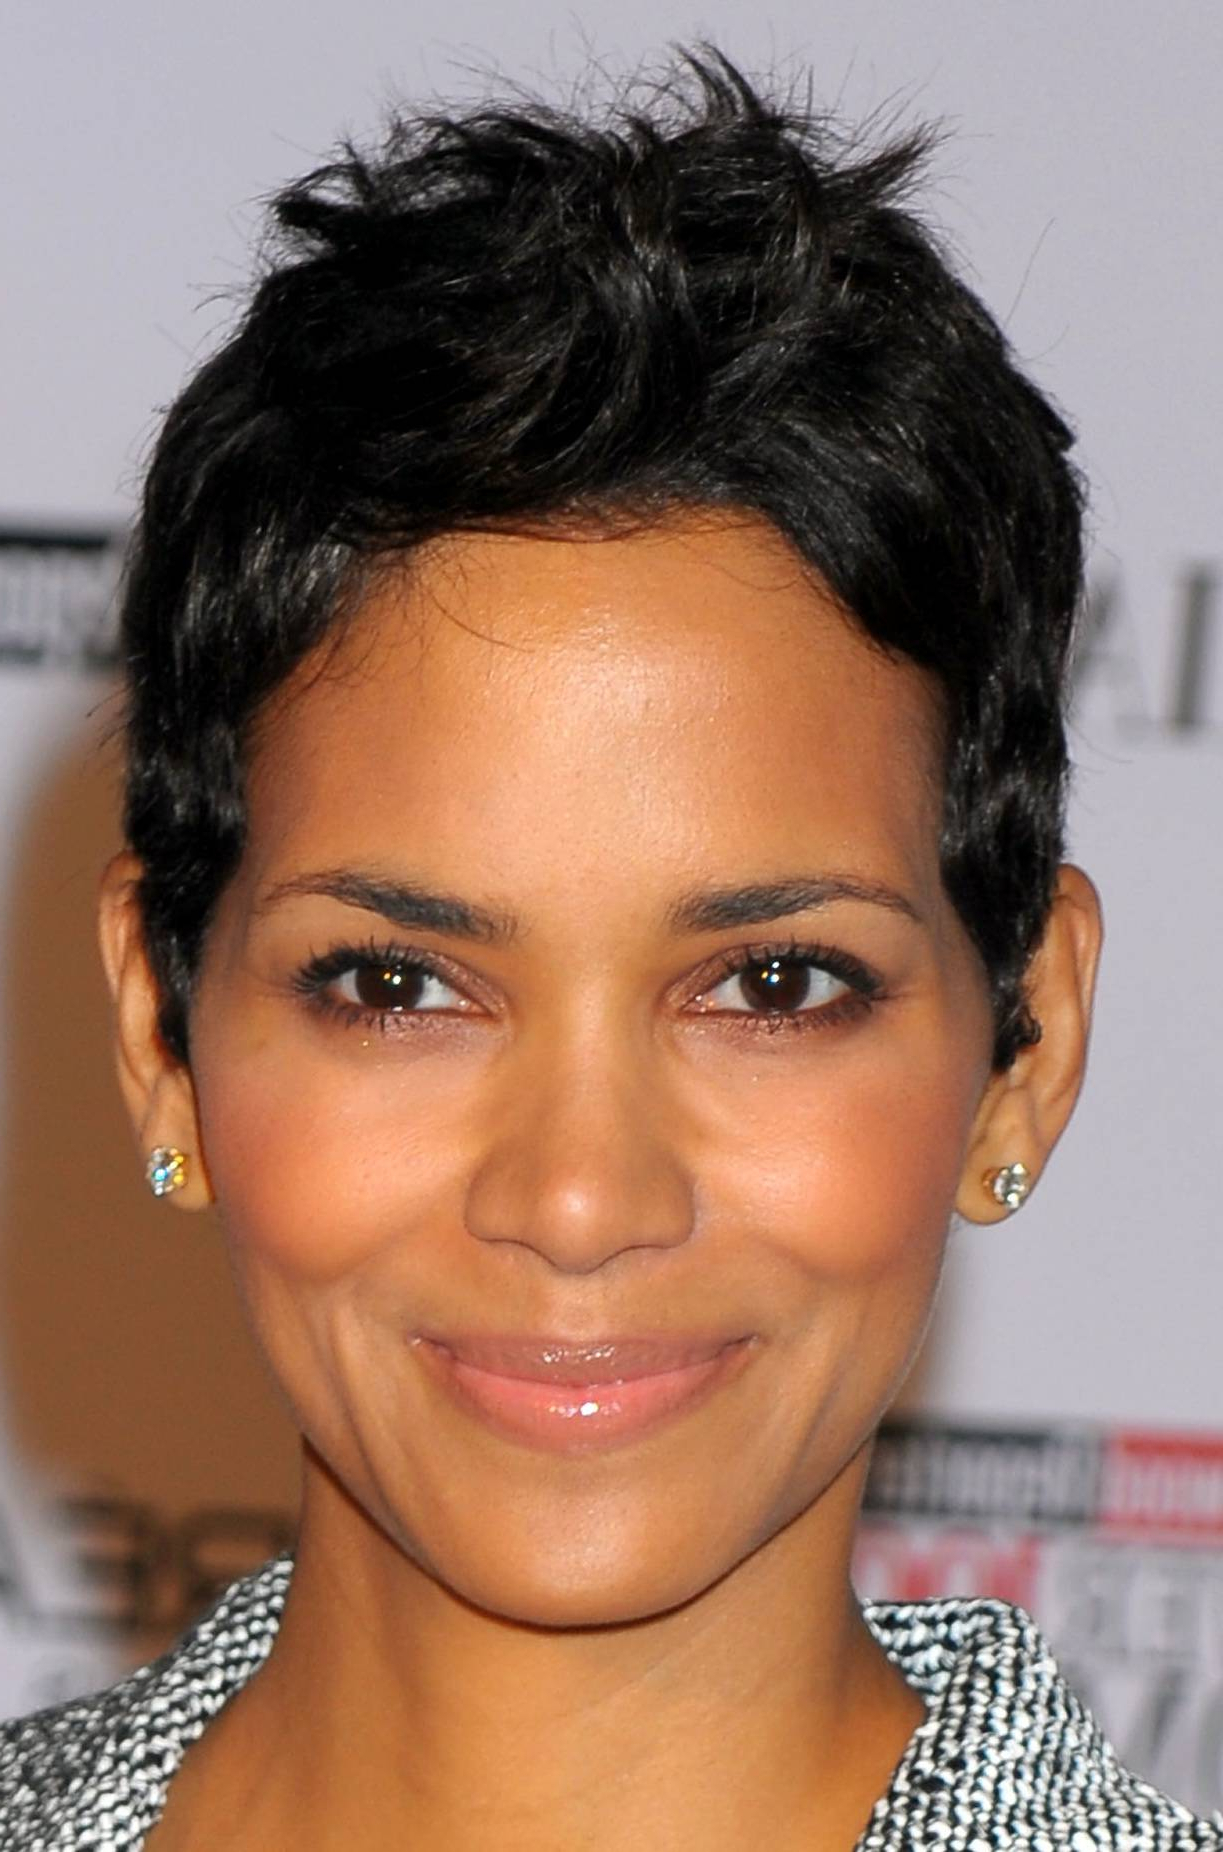 Black Short Hairstyles For Round Faces – Hairstyle For Women & Man Inside Black Short Haircuts For Round Faces (View 6 of 25)